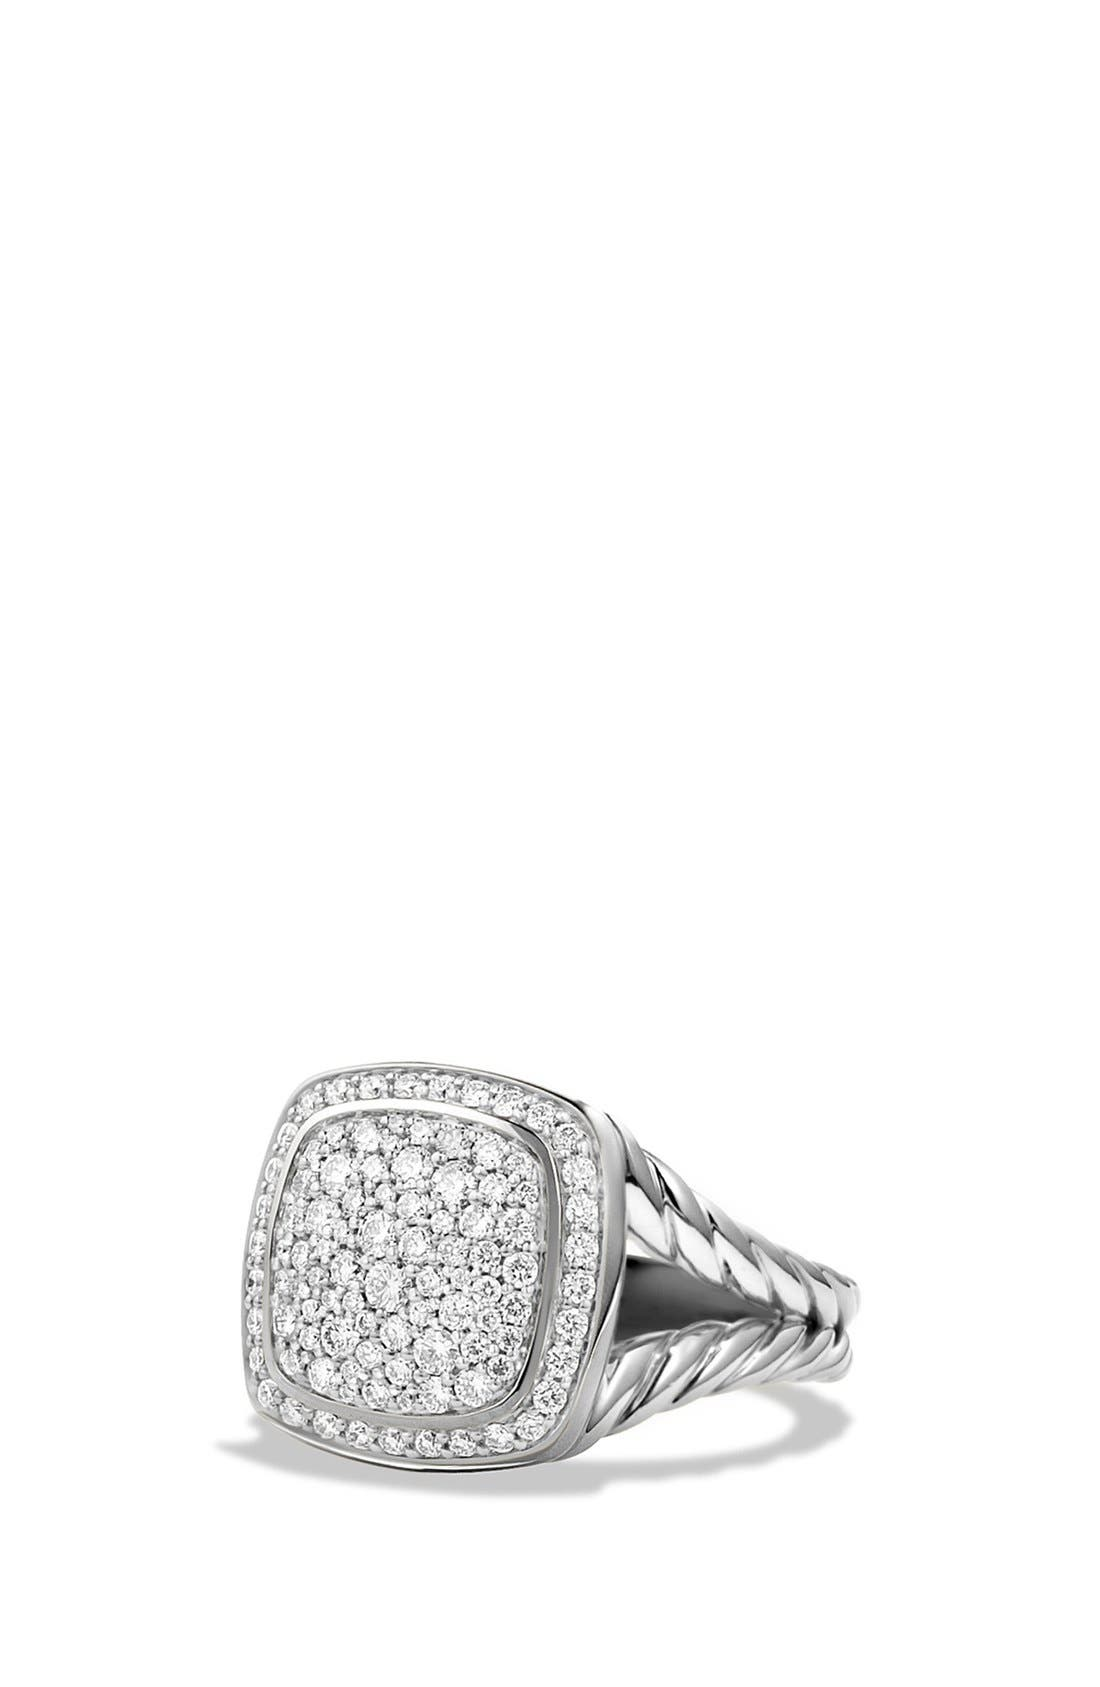 David Yurman 'Albion' Ring with Diamonds